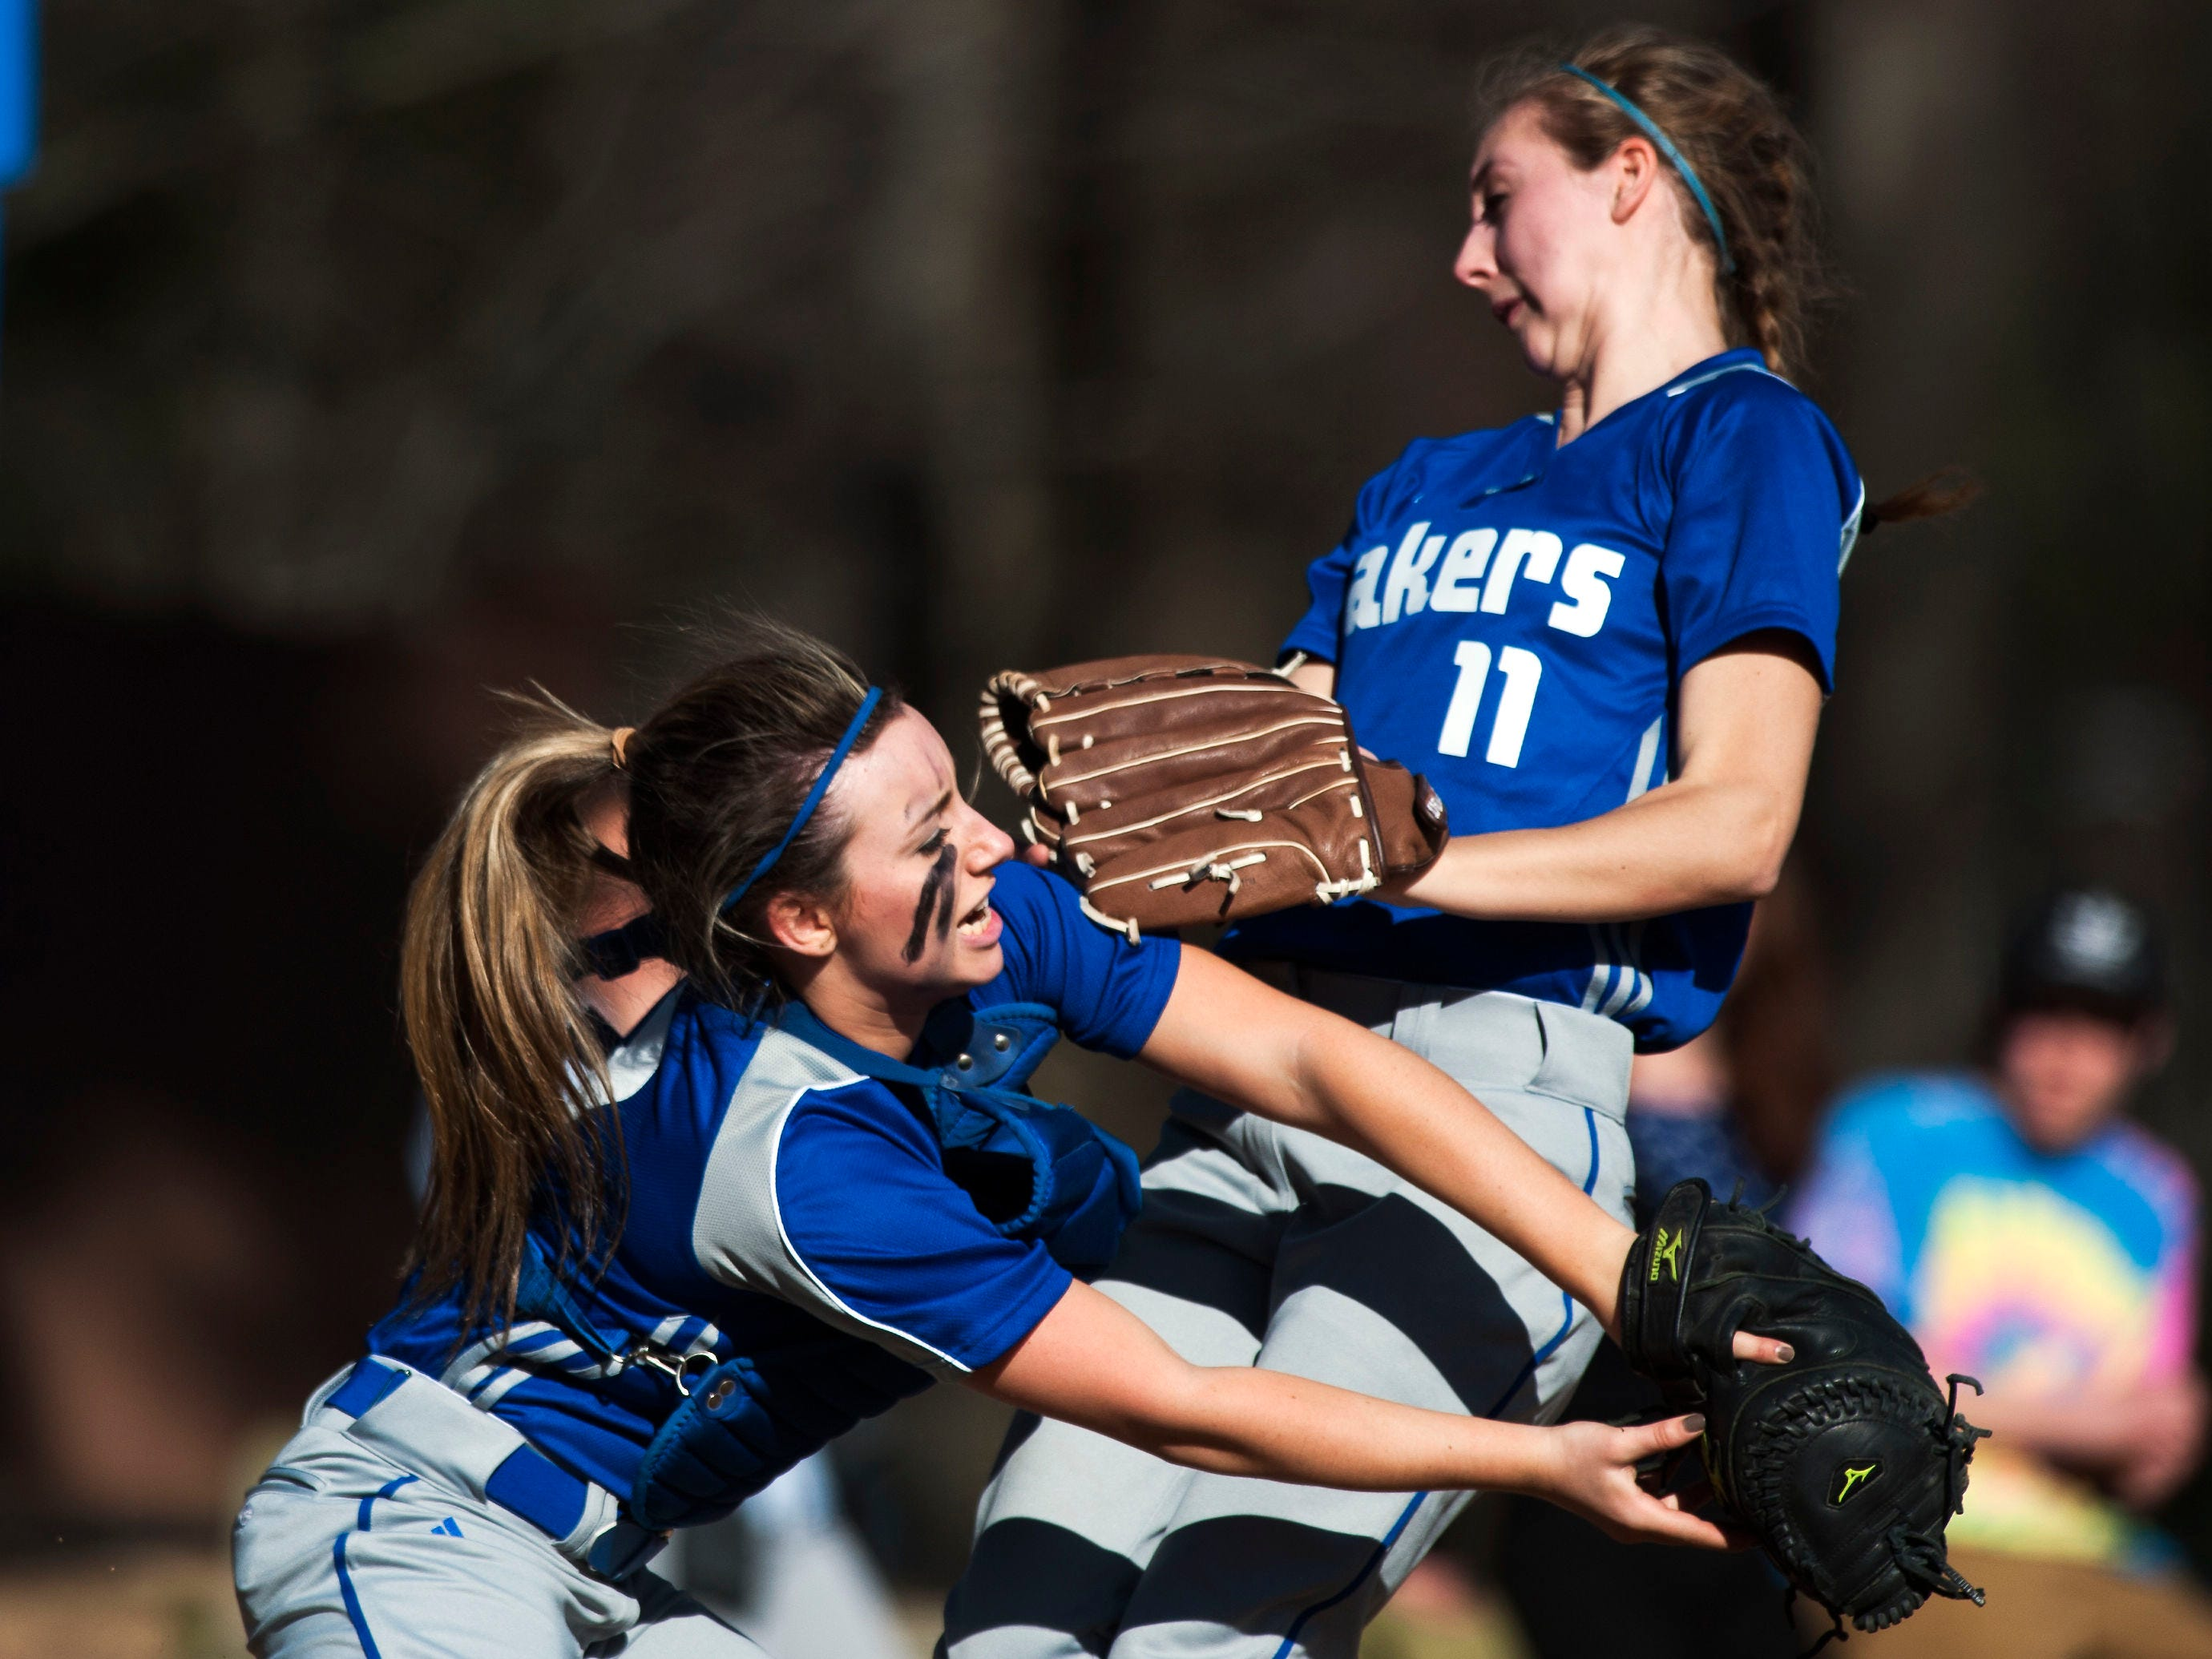 Colchester's Jordan Schrabel (7) collides with Brittany Isatelle (11) as she catches a fly ball during the girls high school softball game between the Missisquoi Thunderbirds and the Colchester Lakers at Colchester High School on Tuesday afternoon in Colchester.